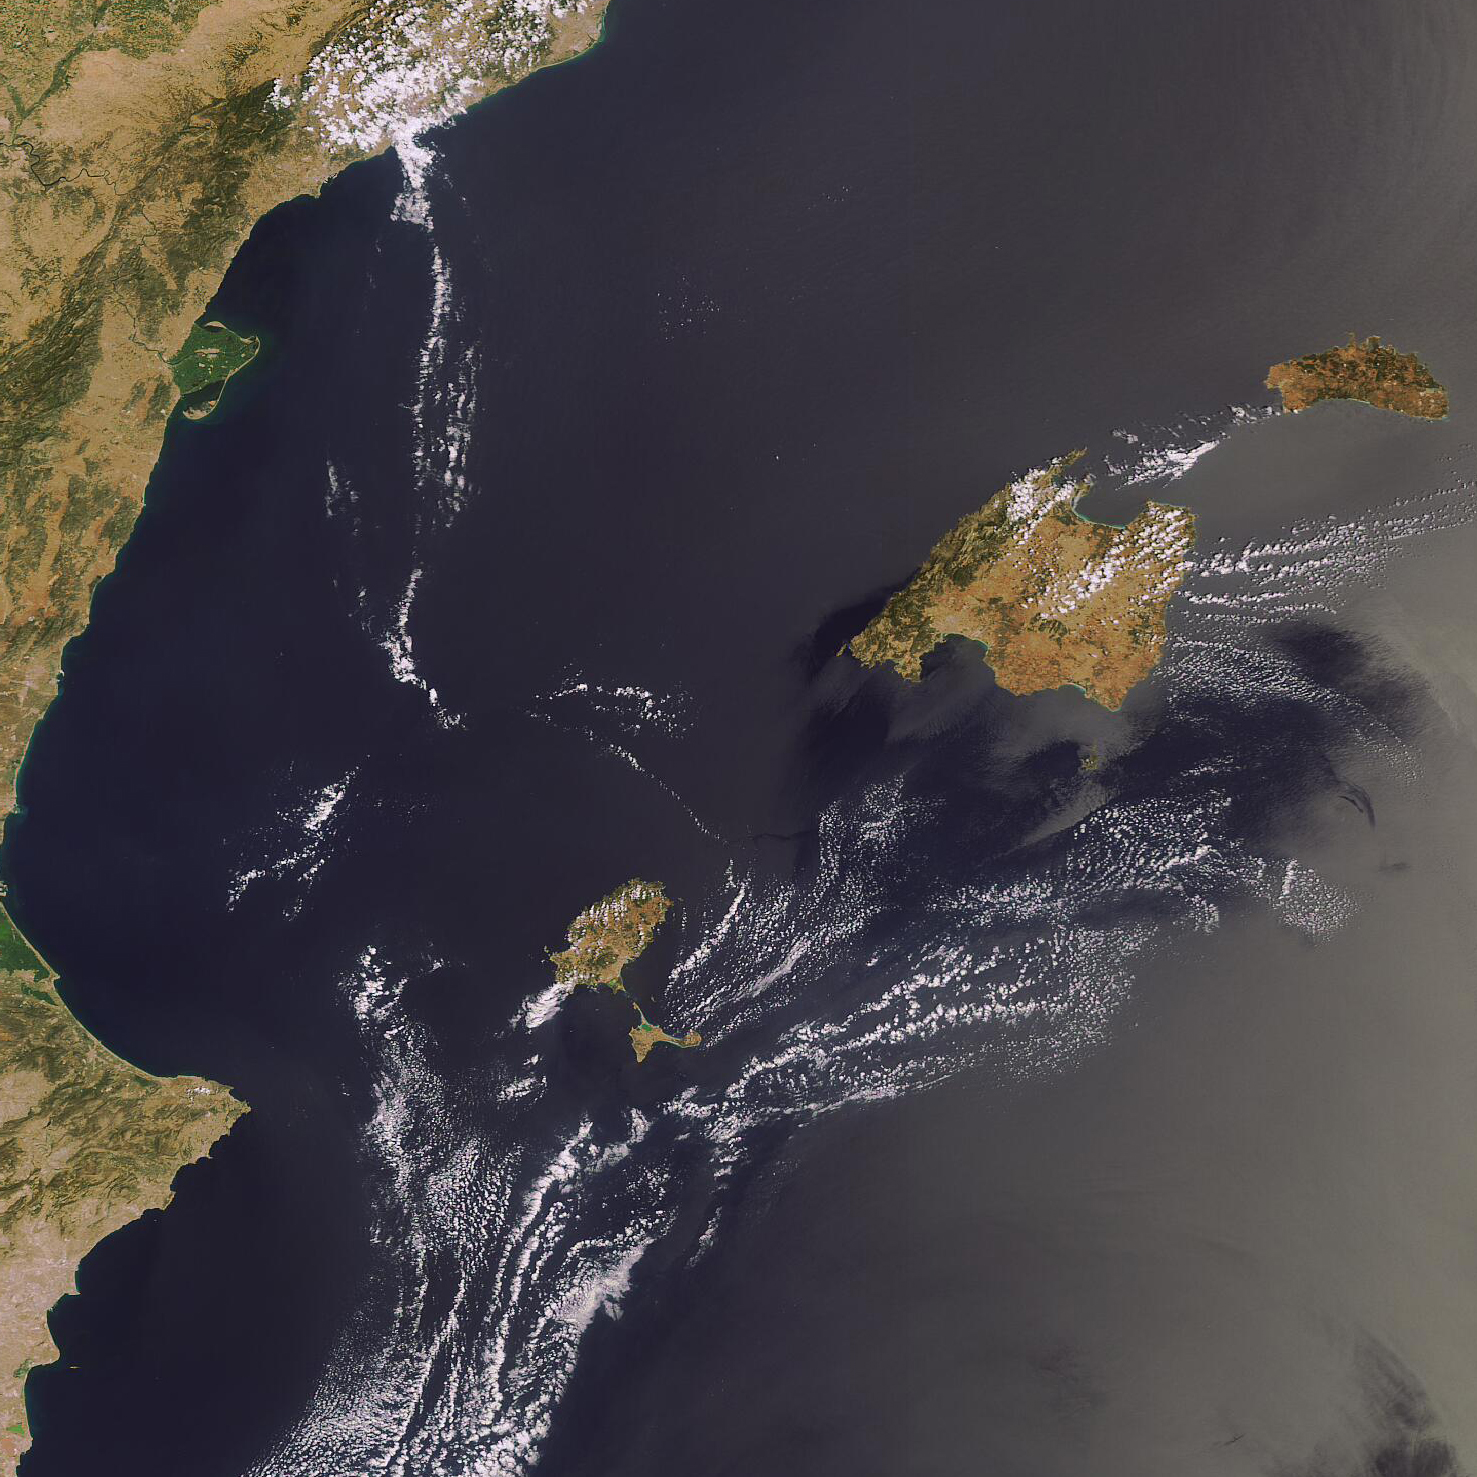 Satellite image of the Balearic Islands 2006